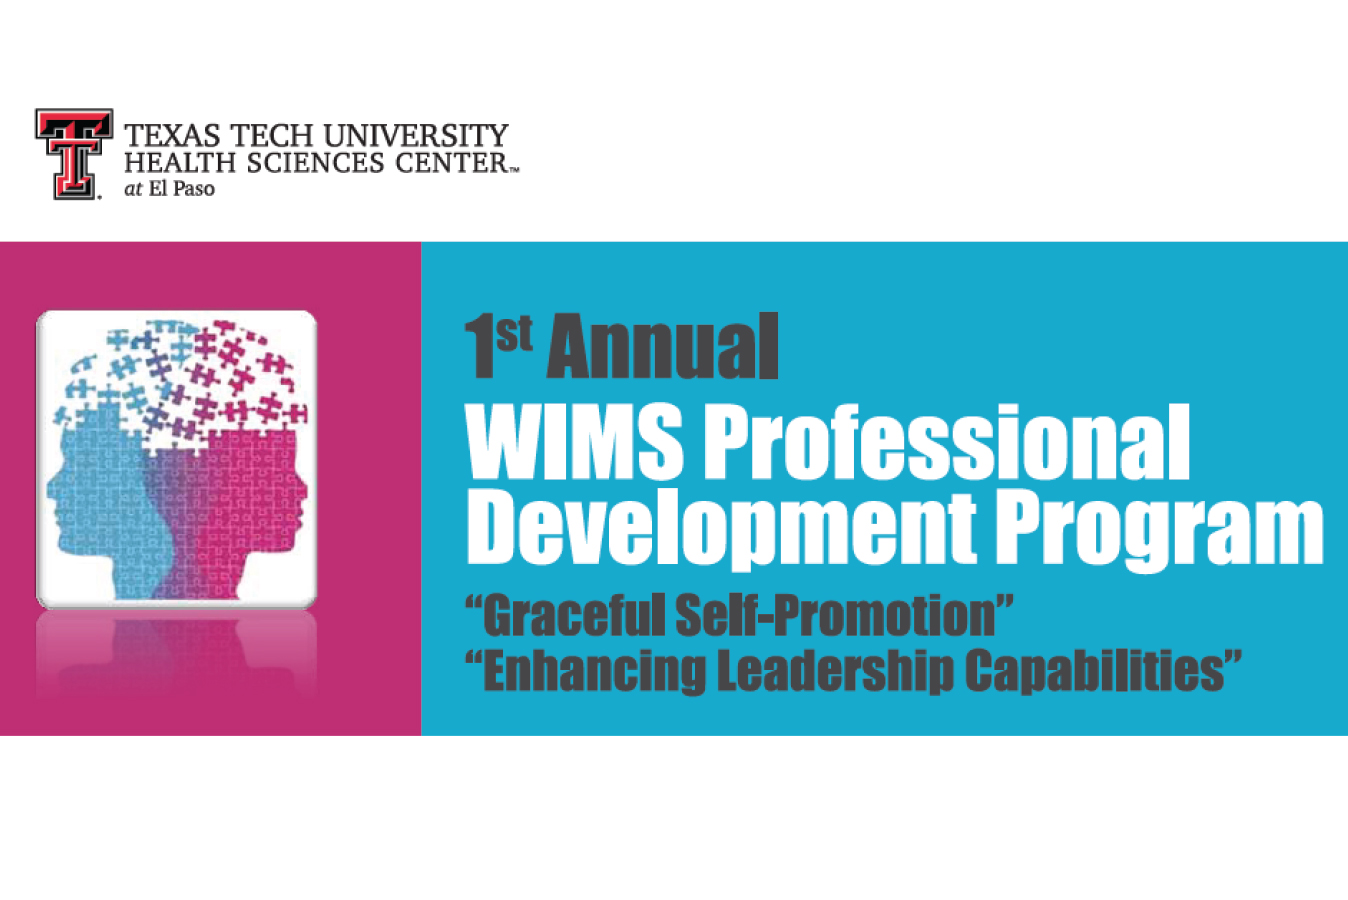 WIMS Professional Development Program